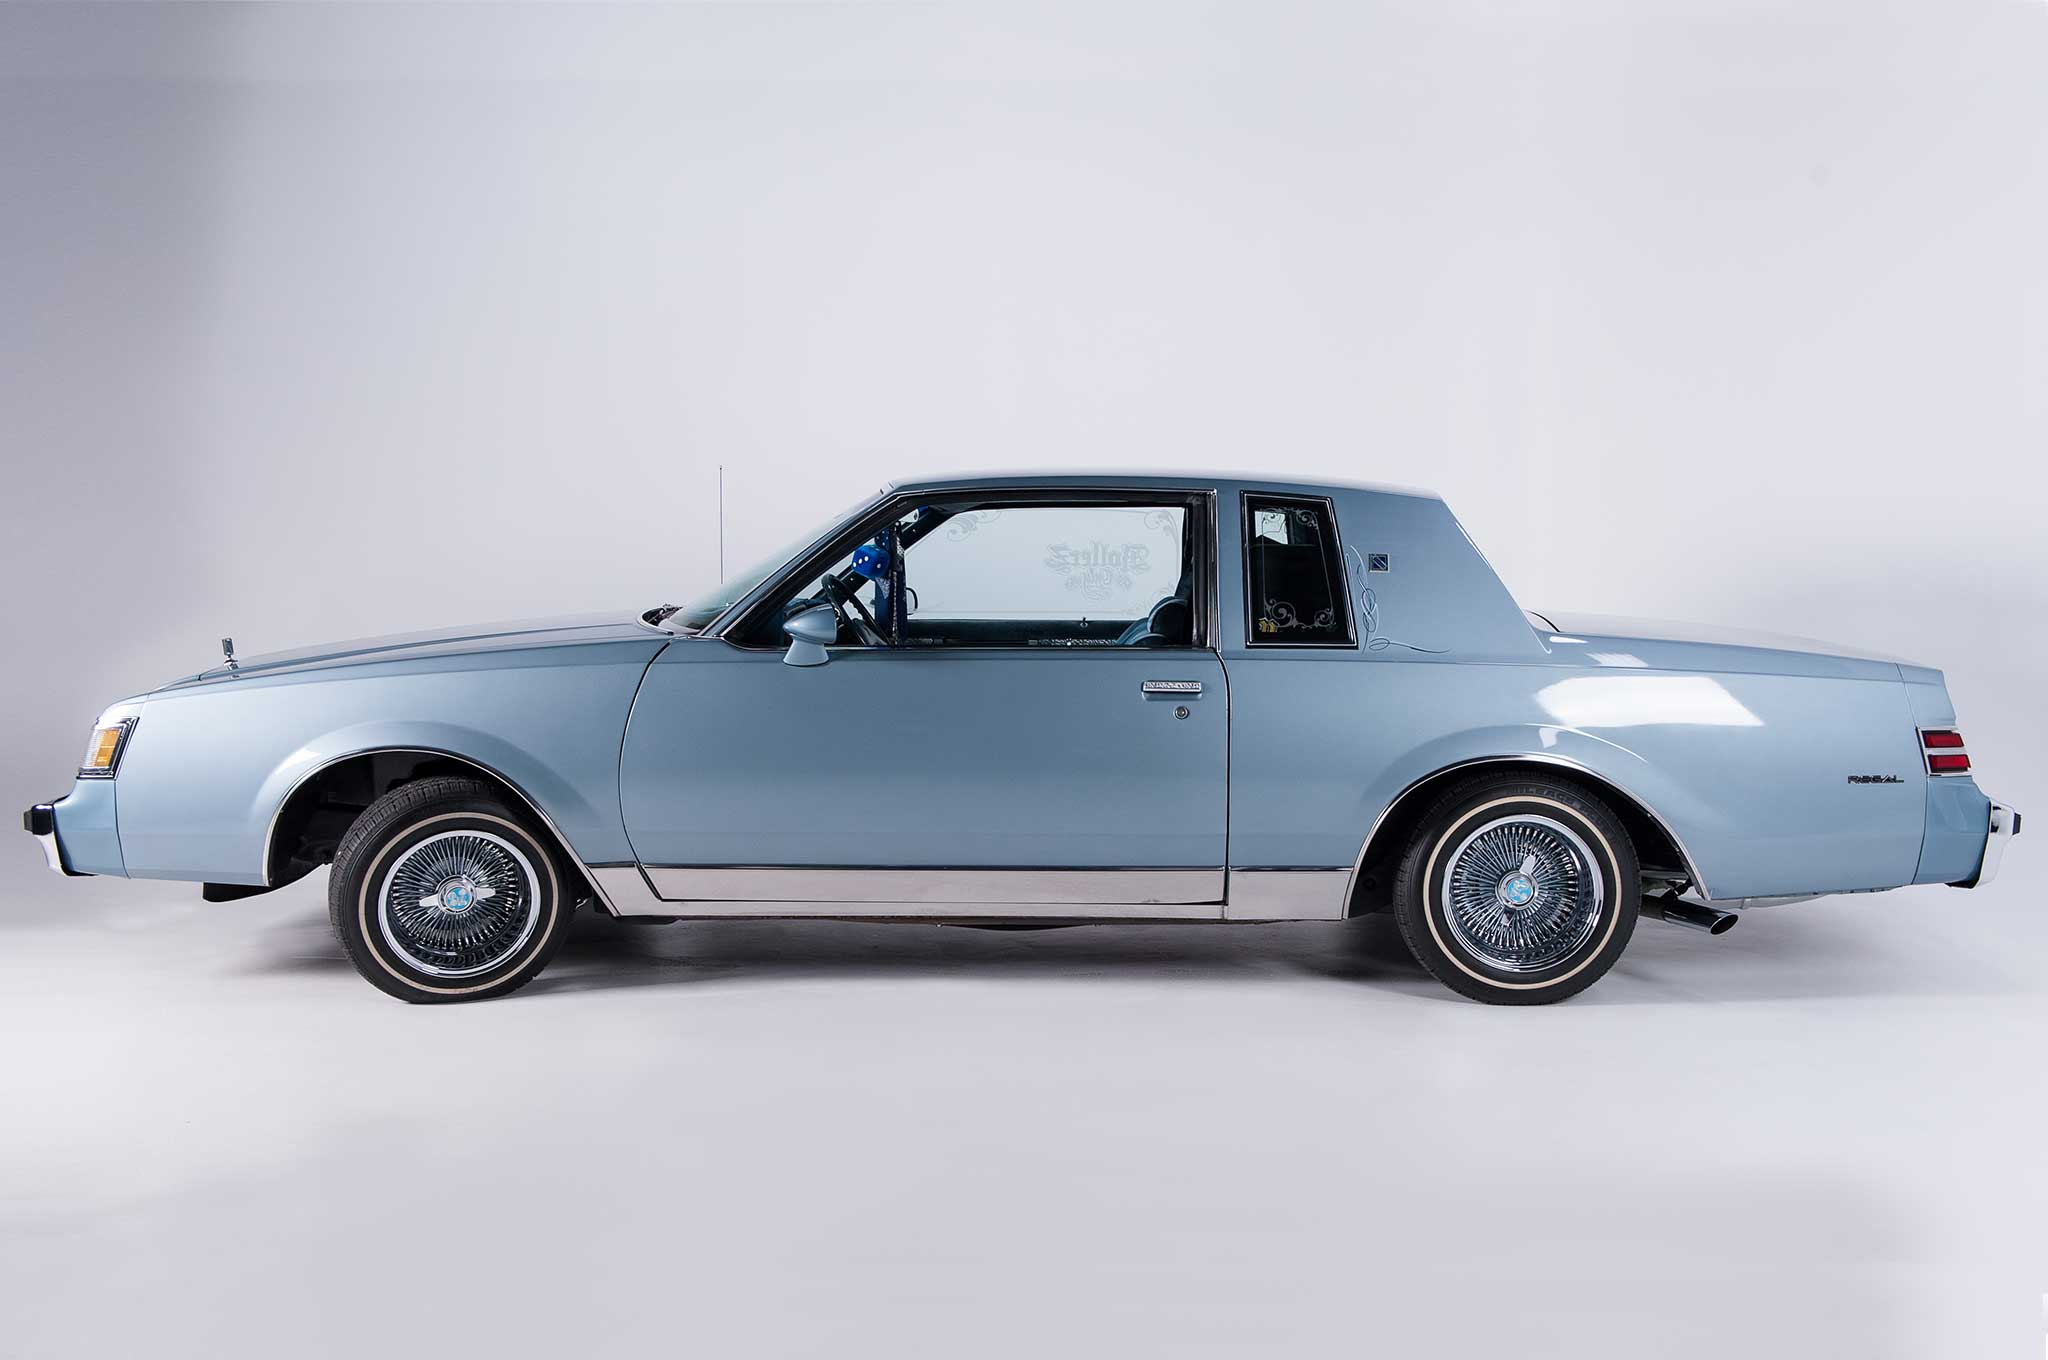 a polish lowrider 1986 buick regal. Black Bedroom Furniture Sets. Home Design Ideas